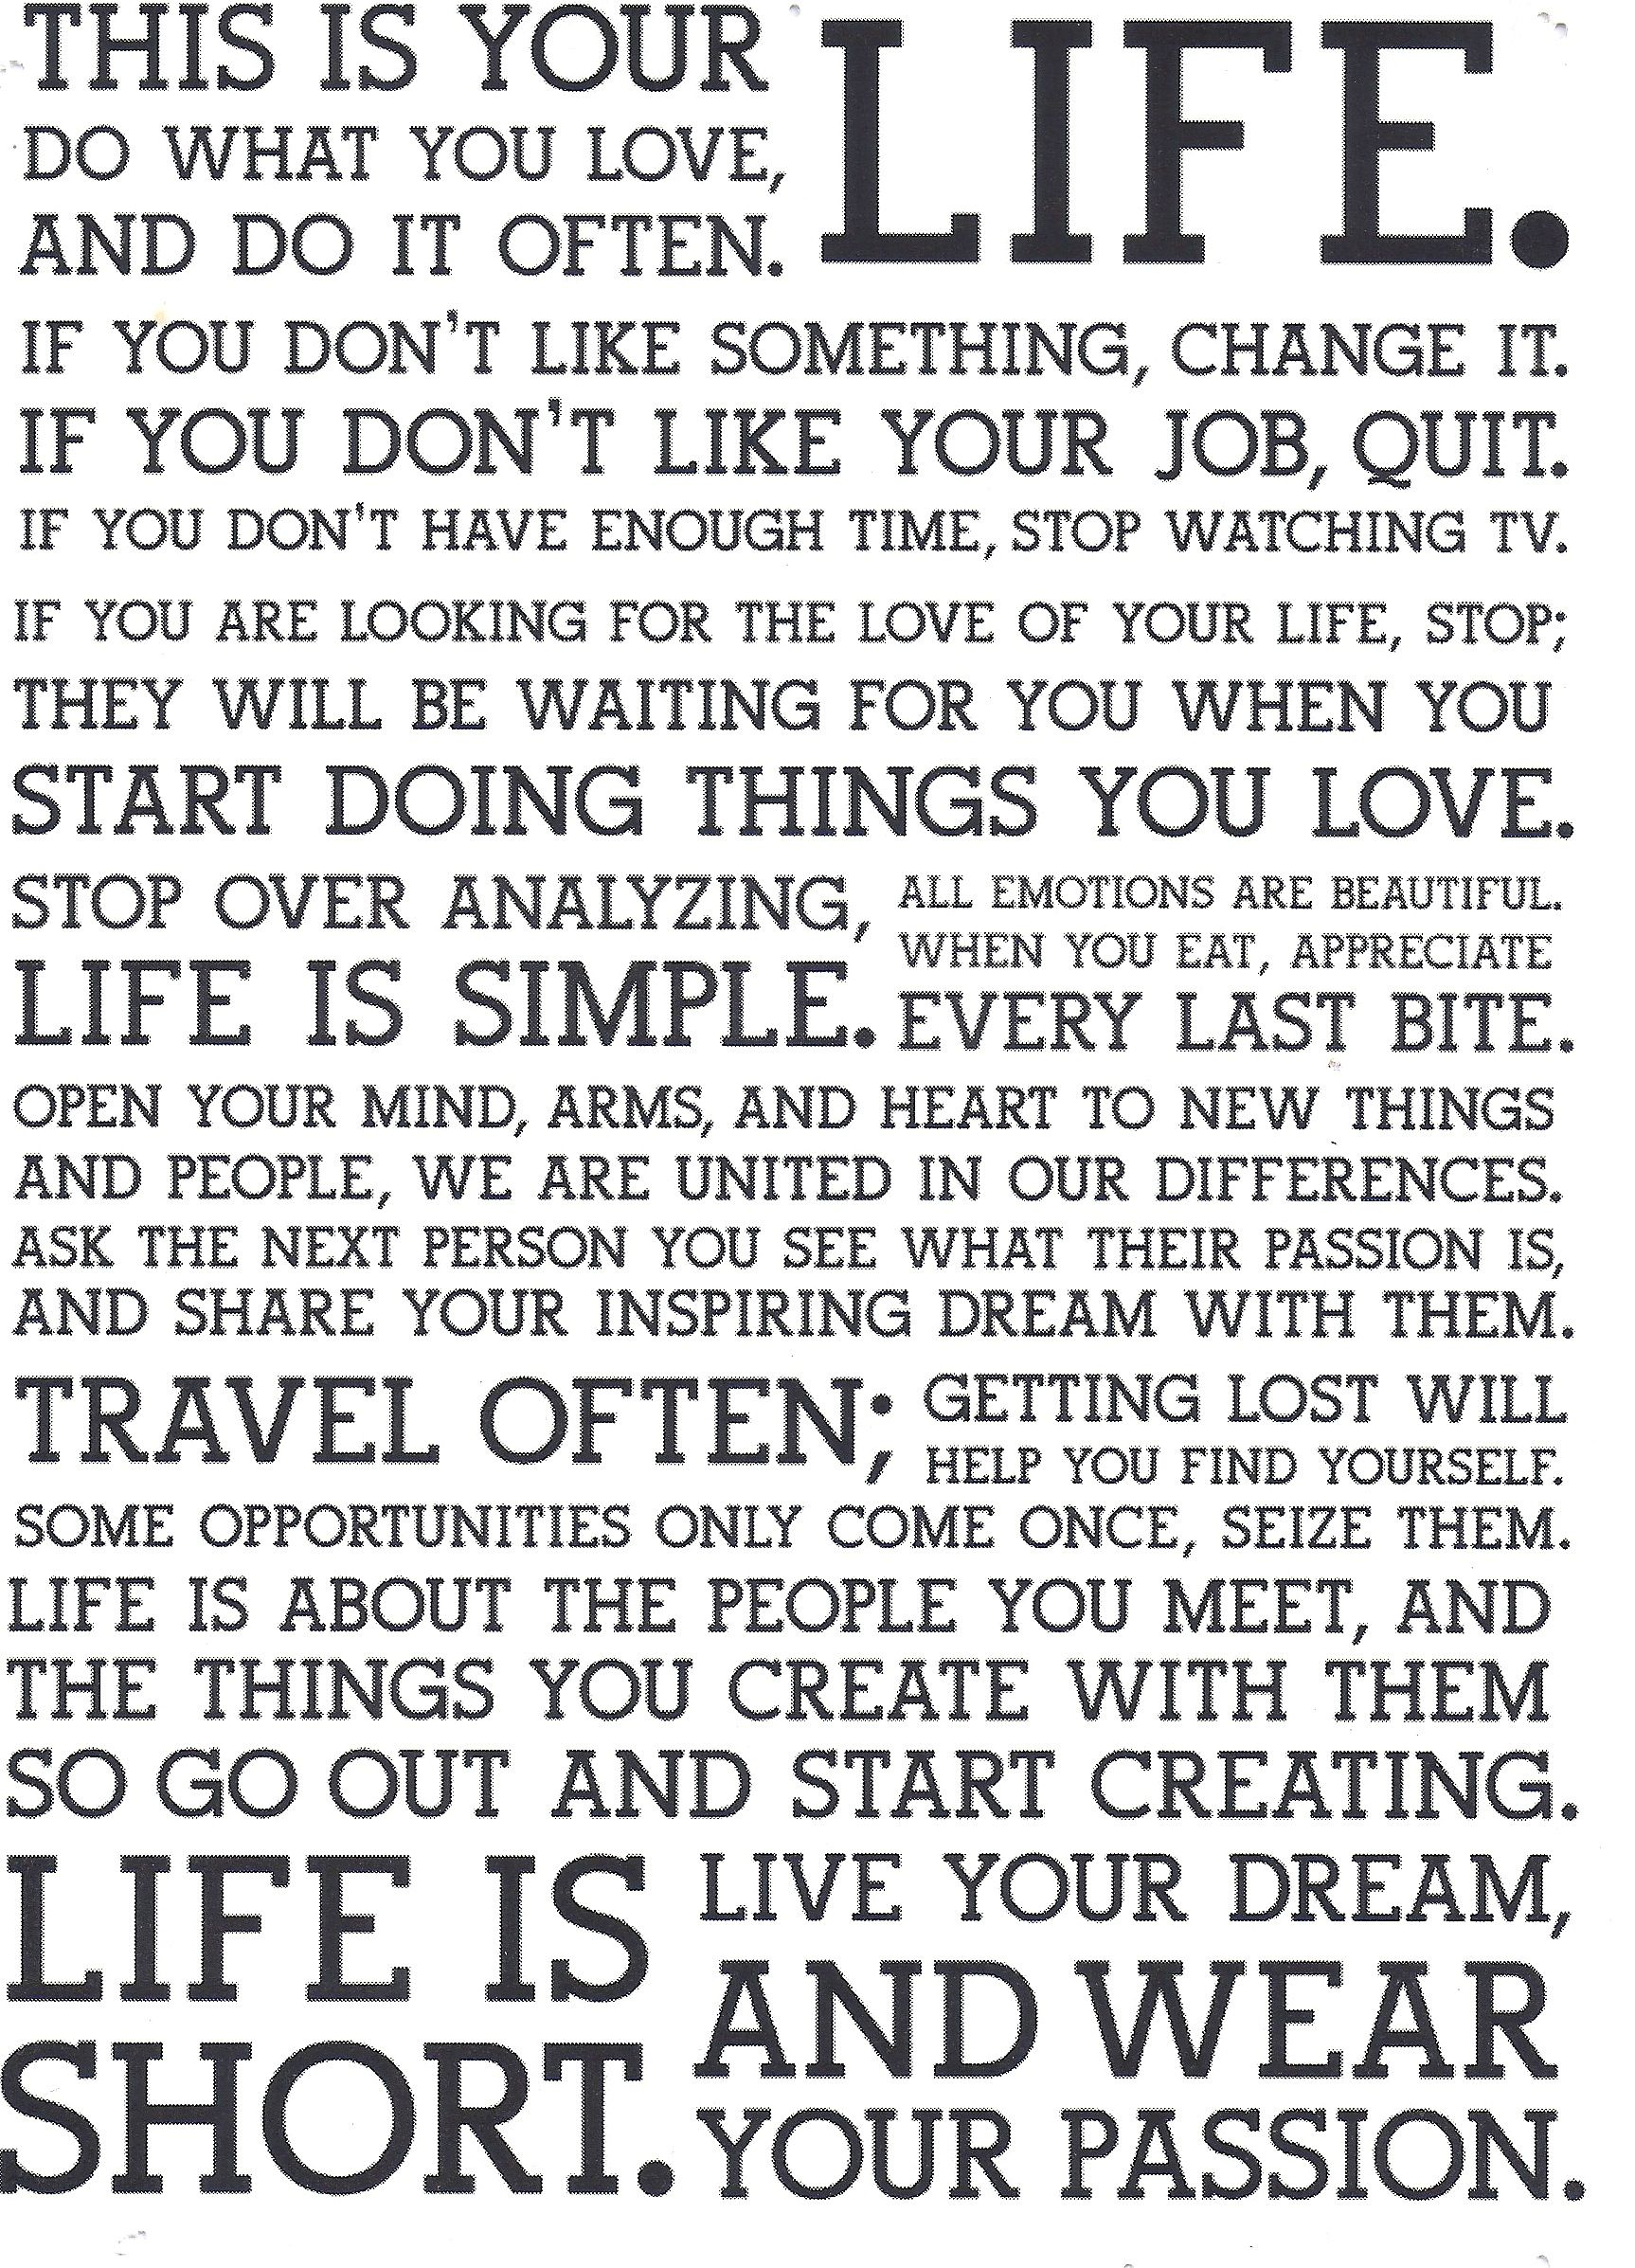 This Is Your Life Quote This Is Your Lifedo What You Love And Do It Oftenif You Don't